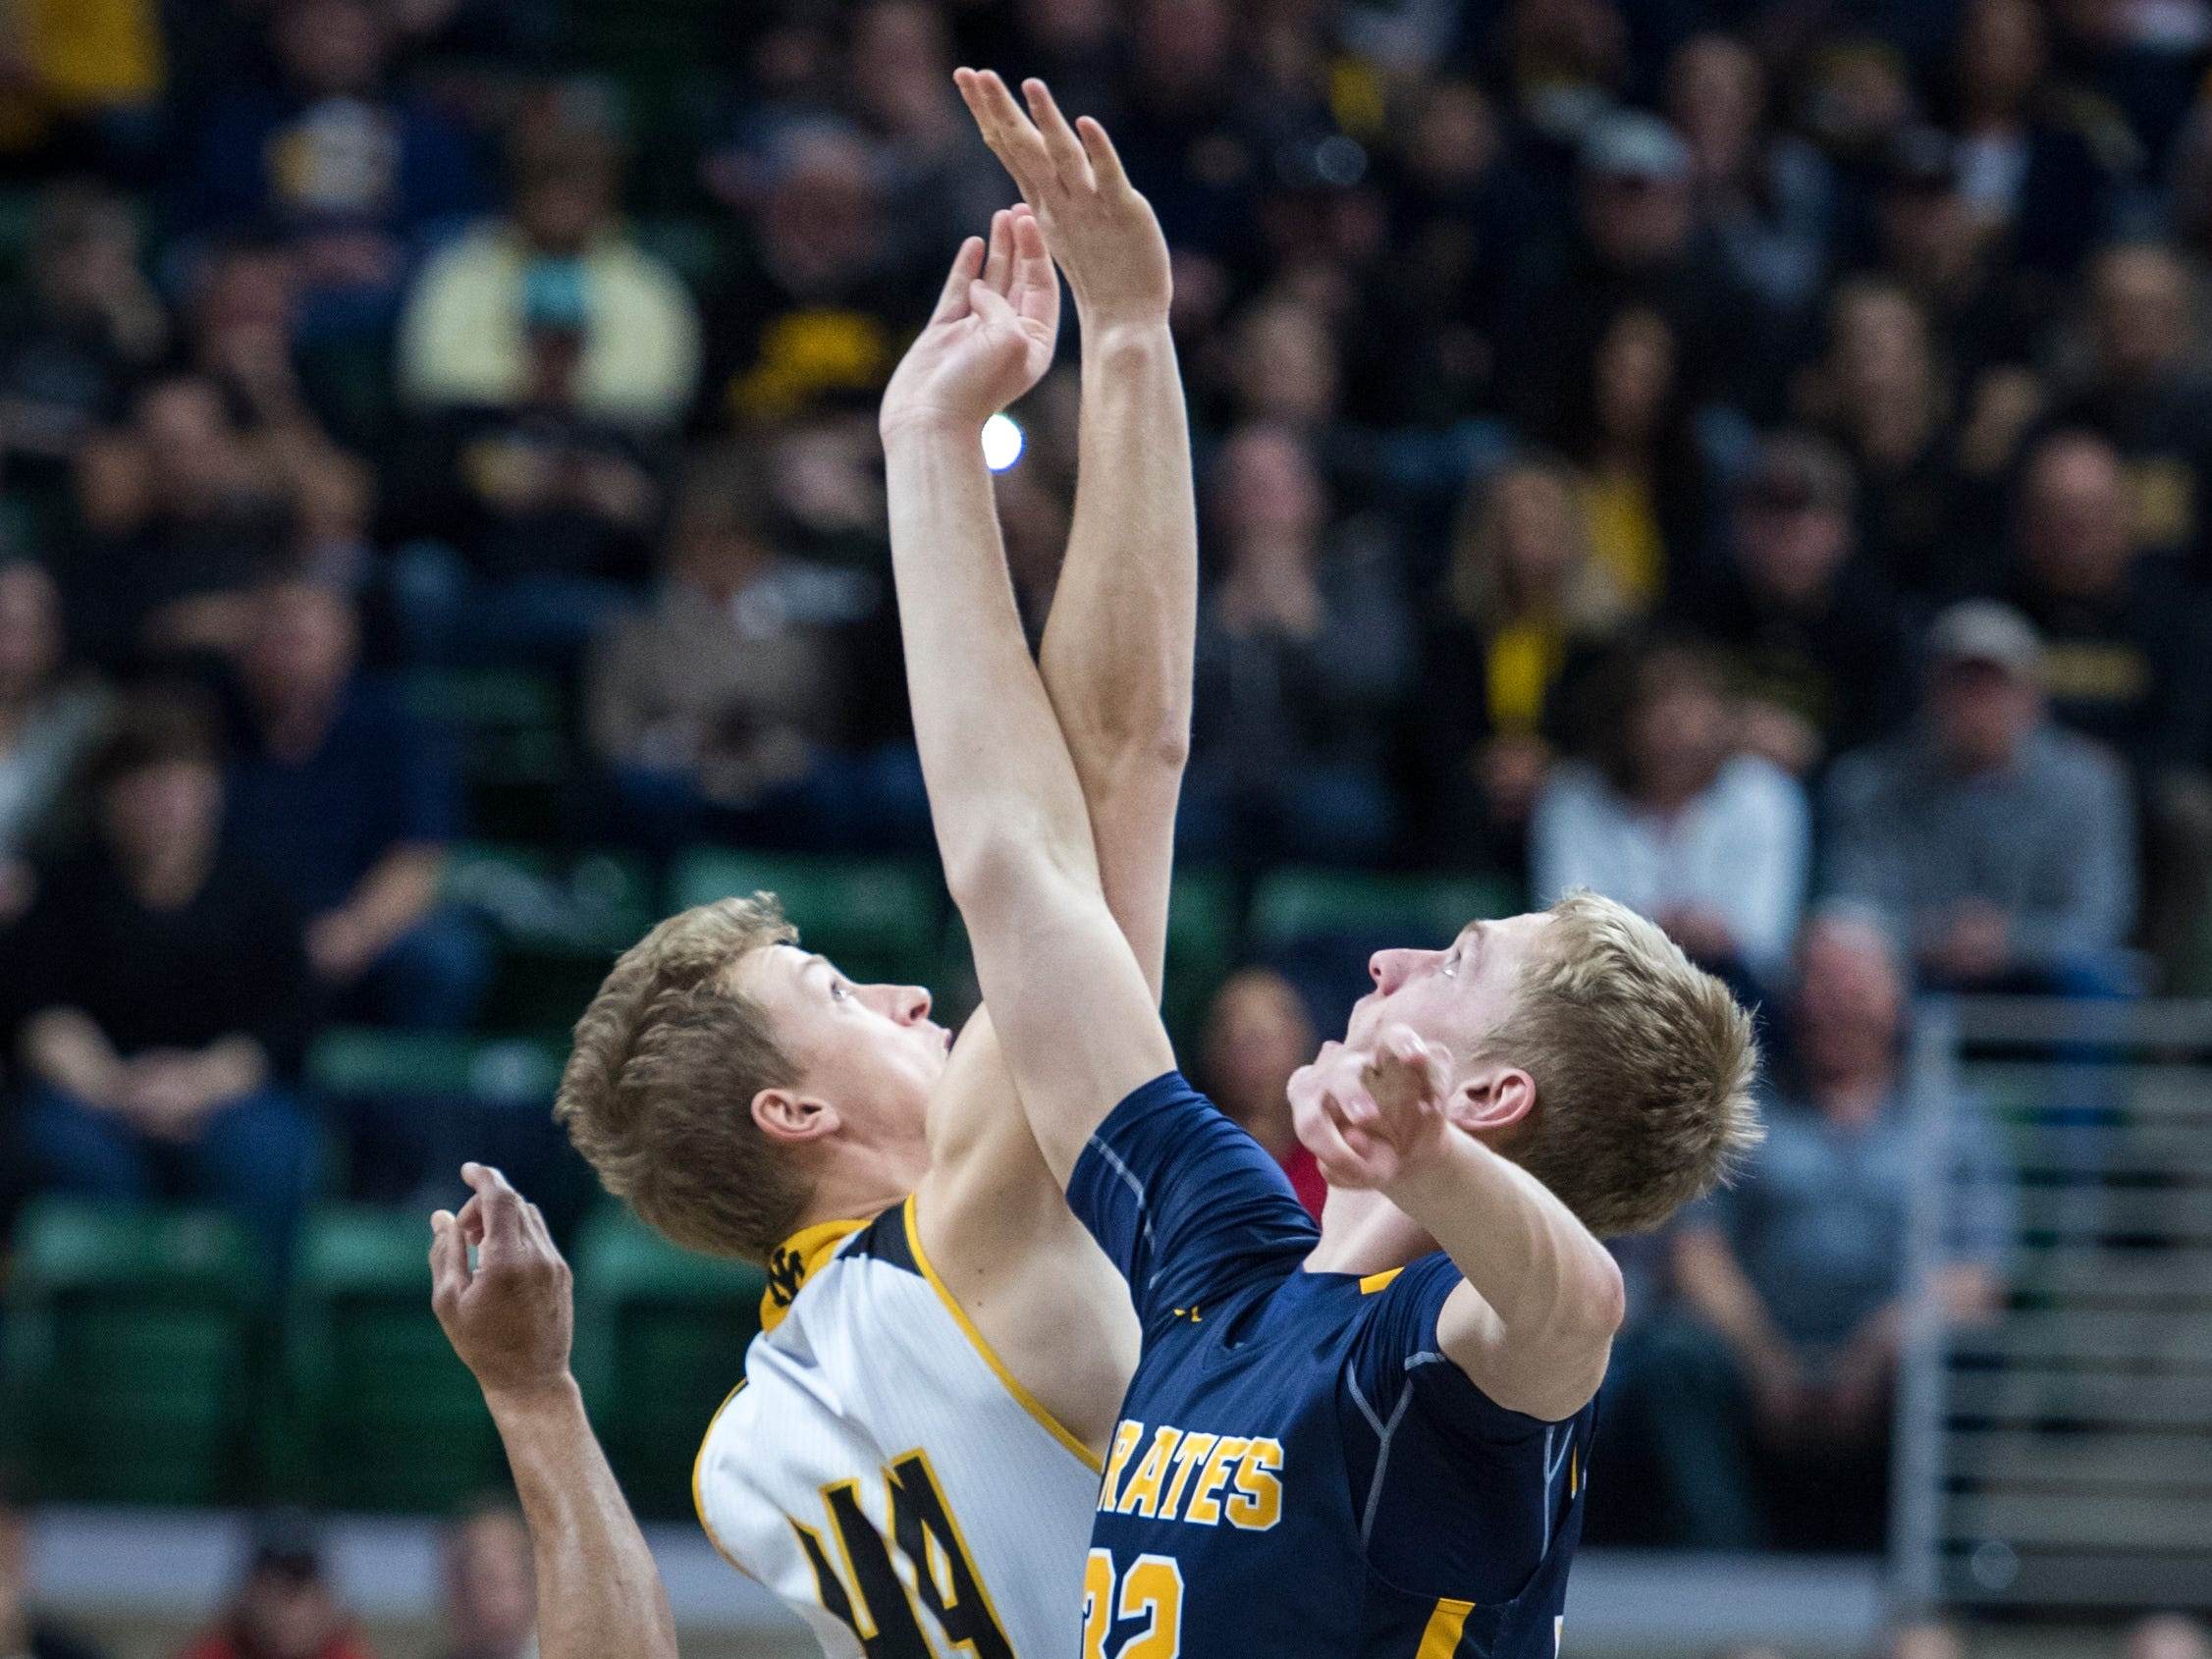 Iron Mountain's Charlie Gerhard and Pewamo-Westphalia's Andre Smith jump for the tipoff in the first half.